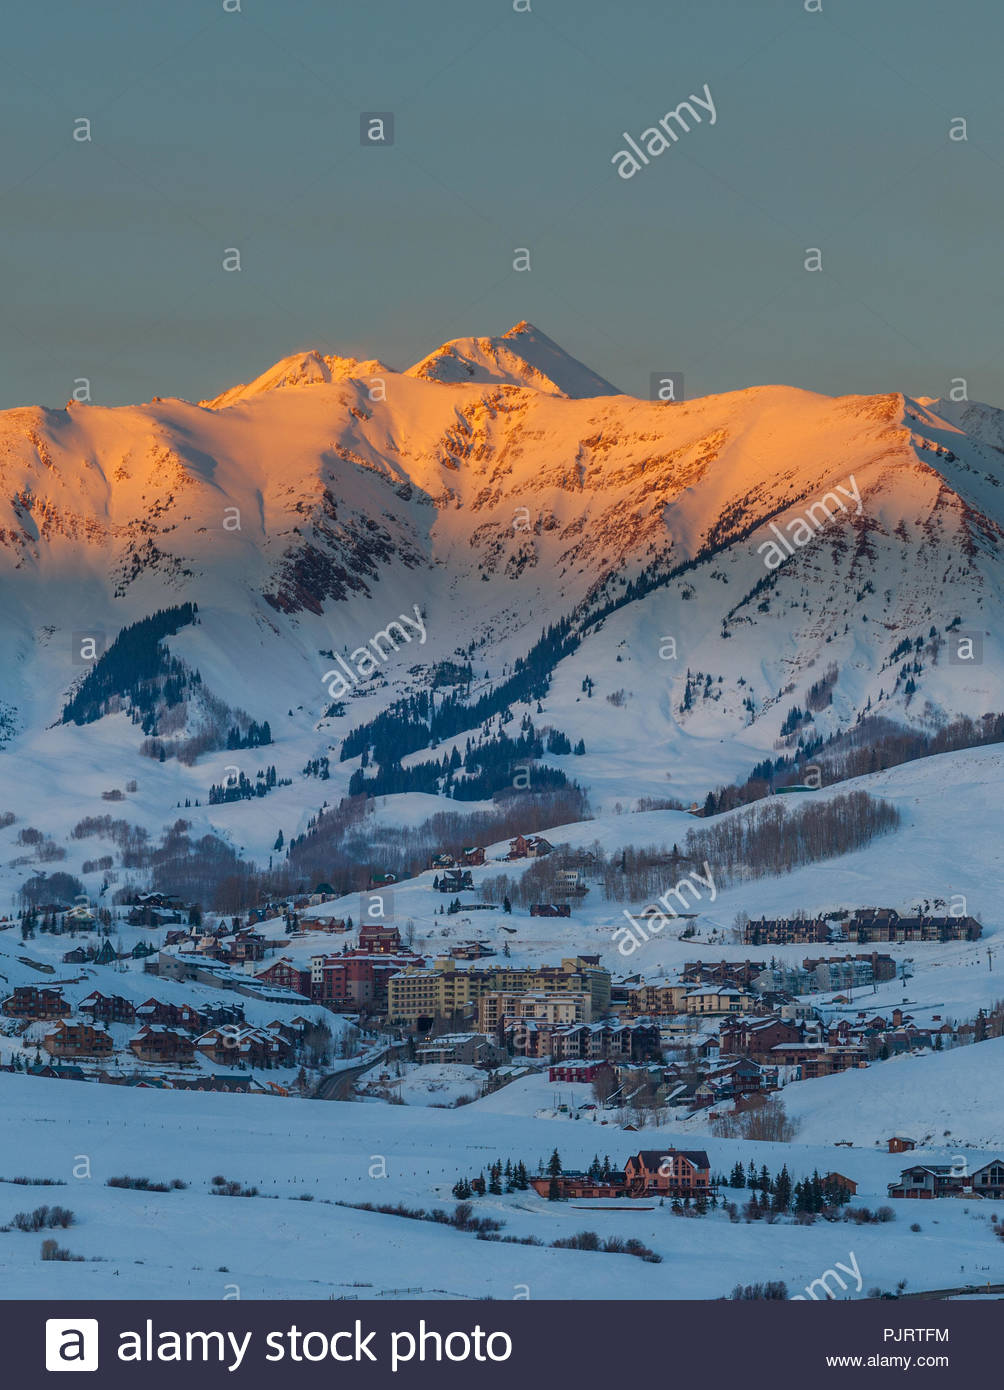 Sunset light called alpenglow shines on Whiterock Mountain towering over the town of Mount Crested Butte, Colorado, home of Crested Butte Mountain Res Stock Photo